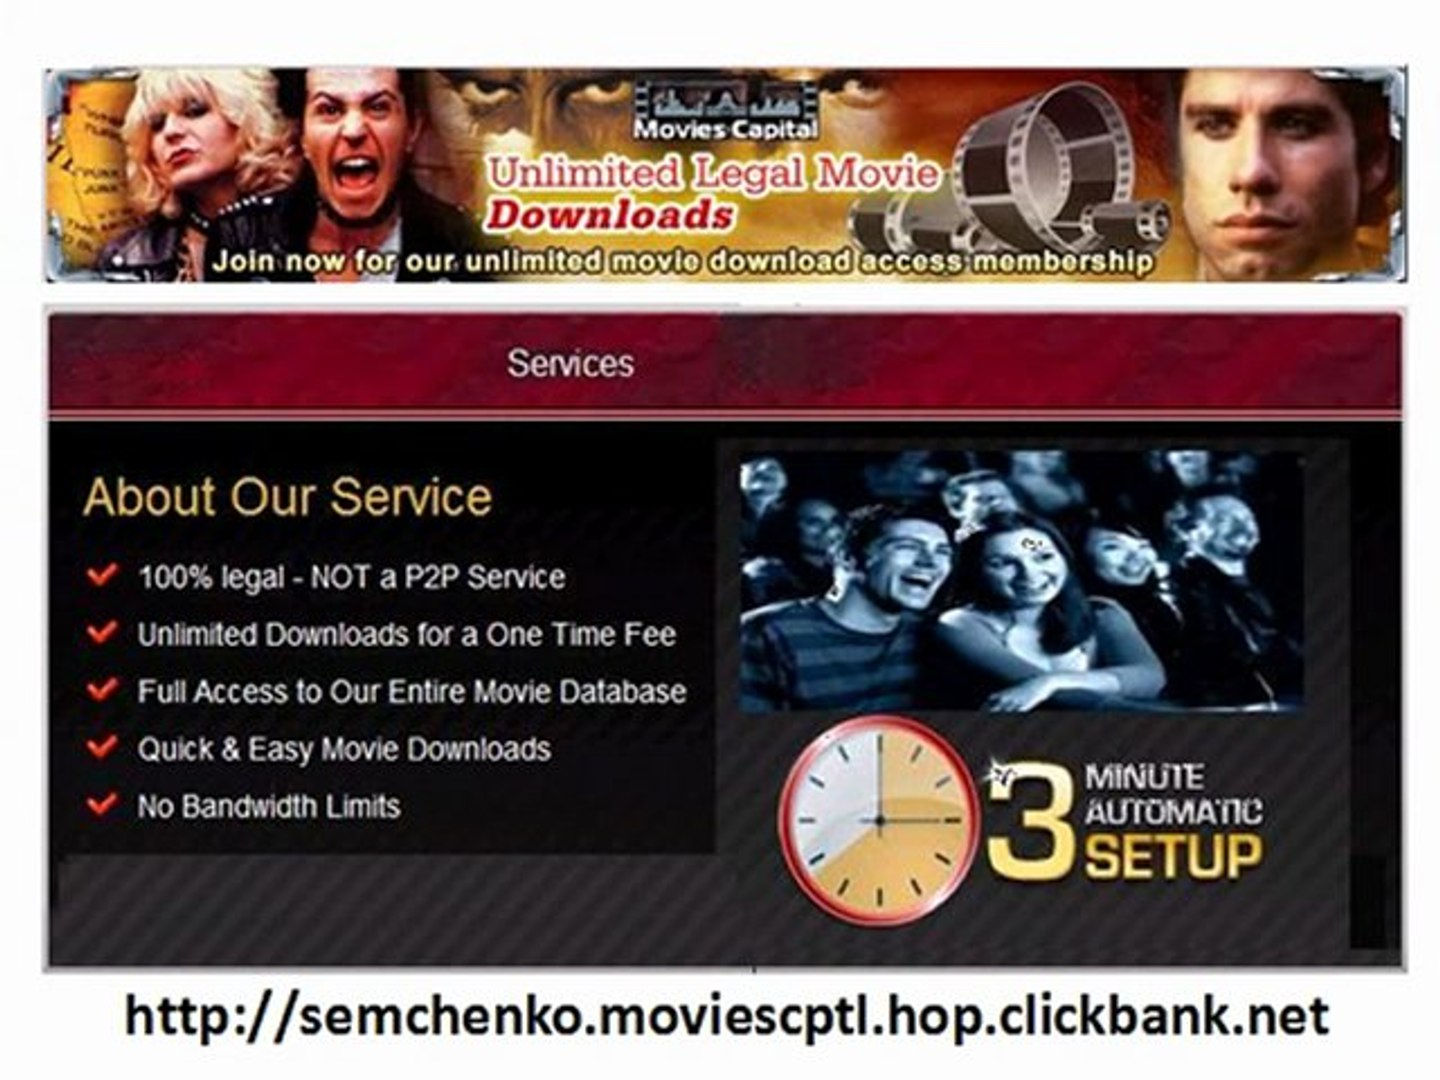 Movies Capital - download full movies - unlimited movie downloads - full movies - movie downloads -